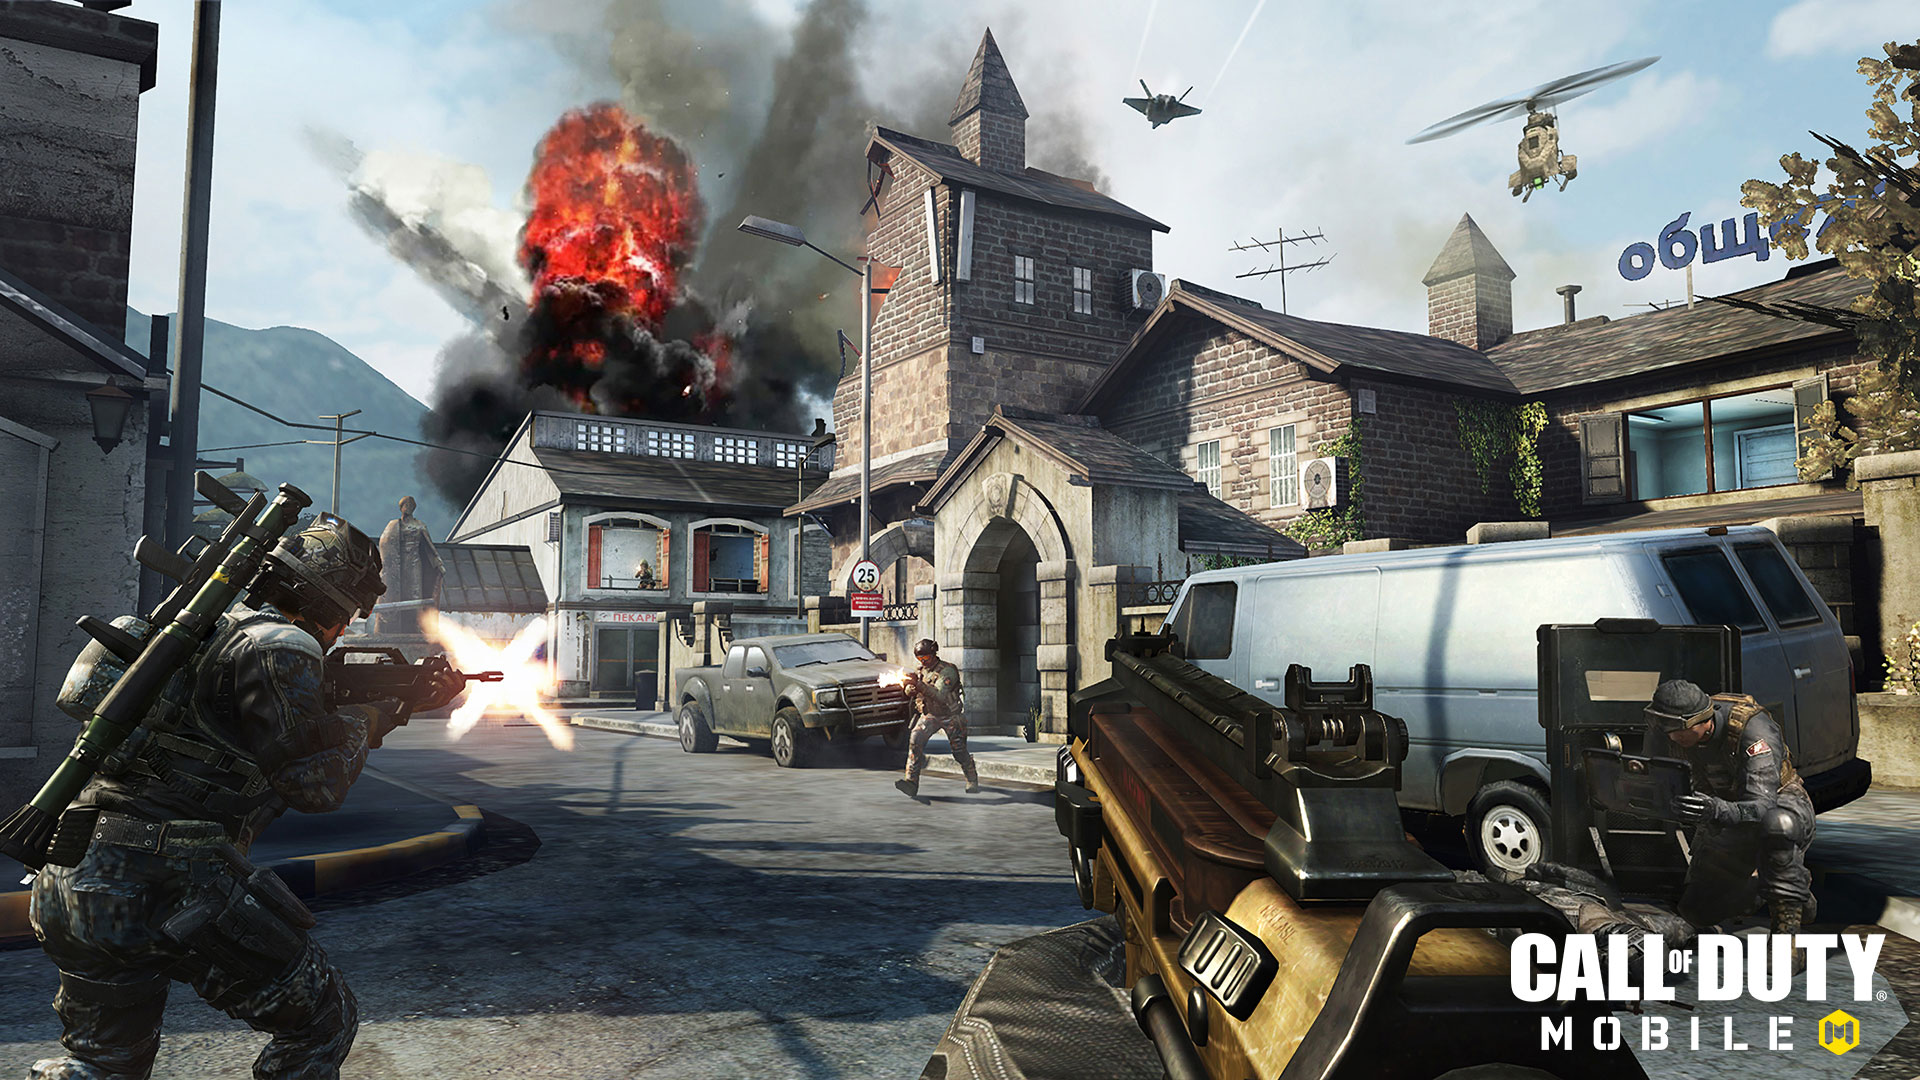 All about the game against all mode in Call of Duty: Mobile